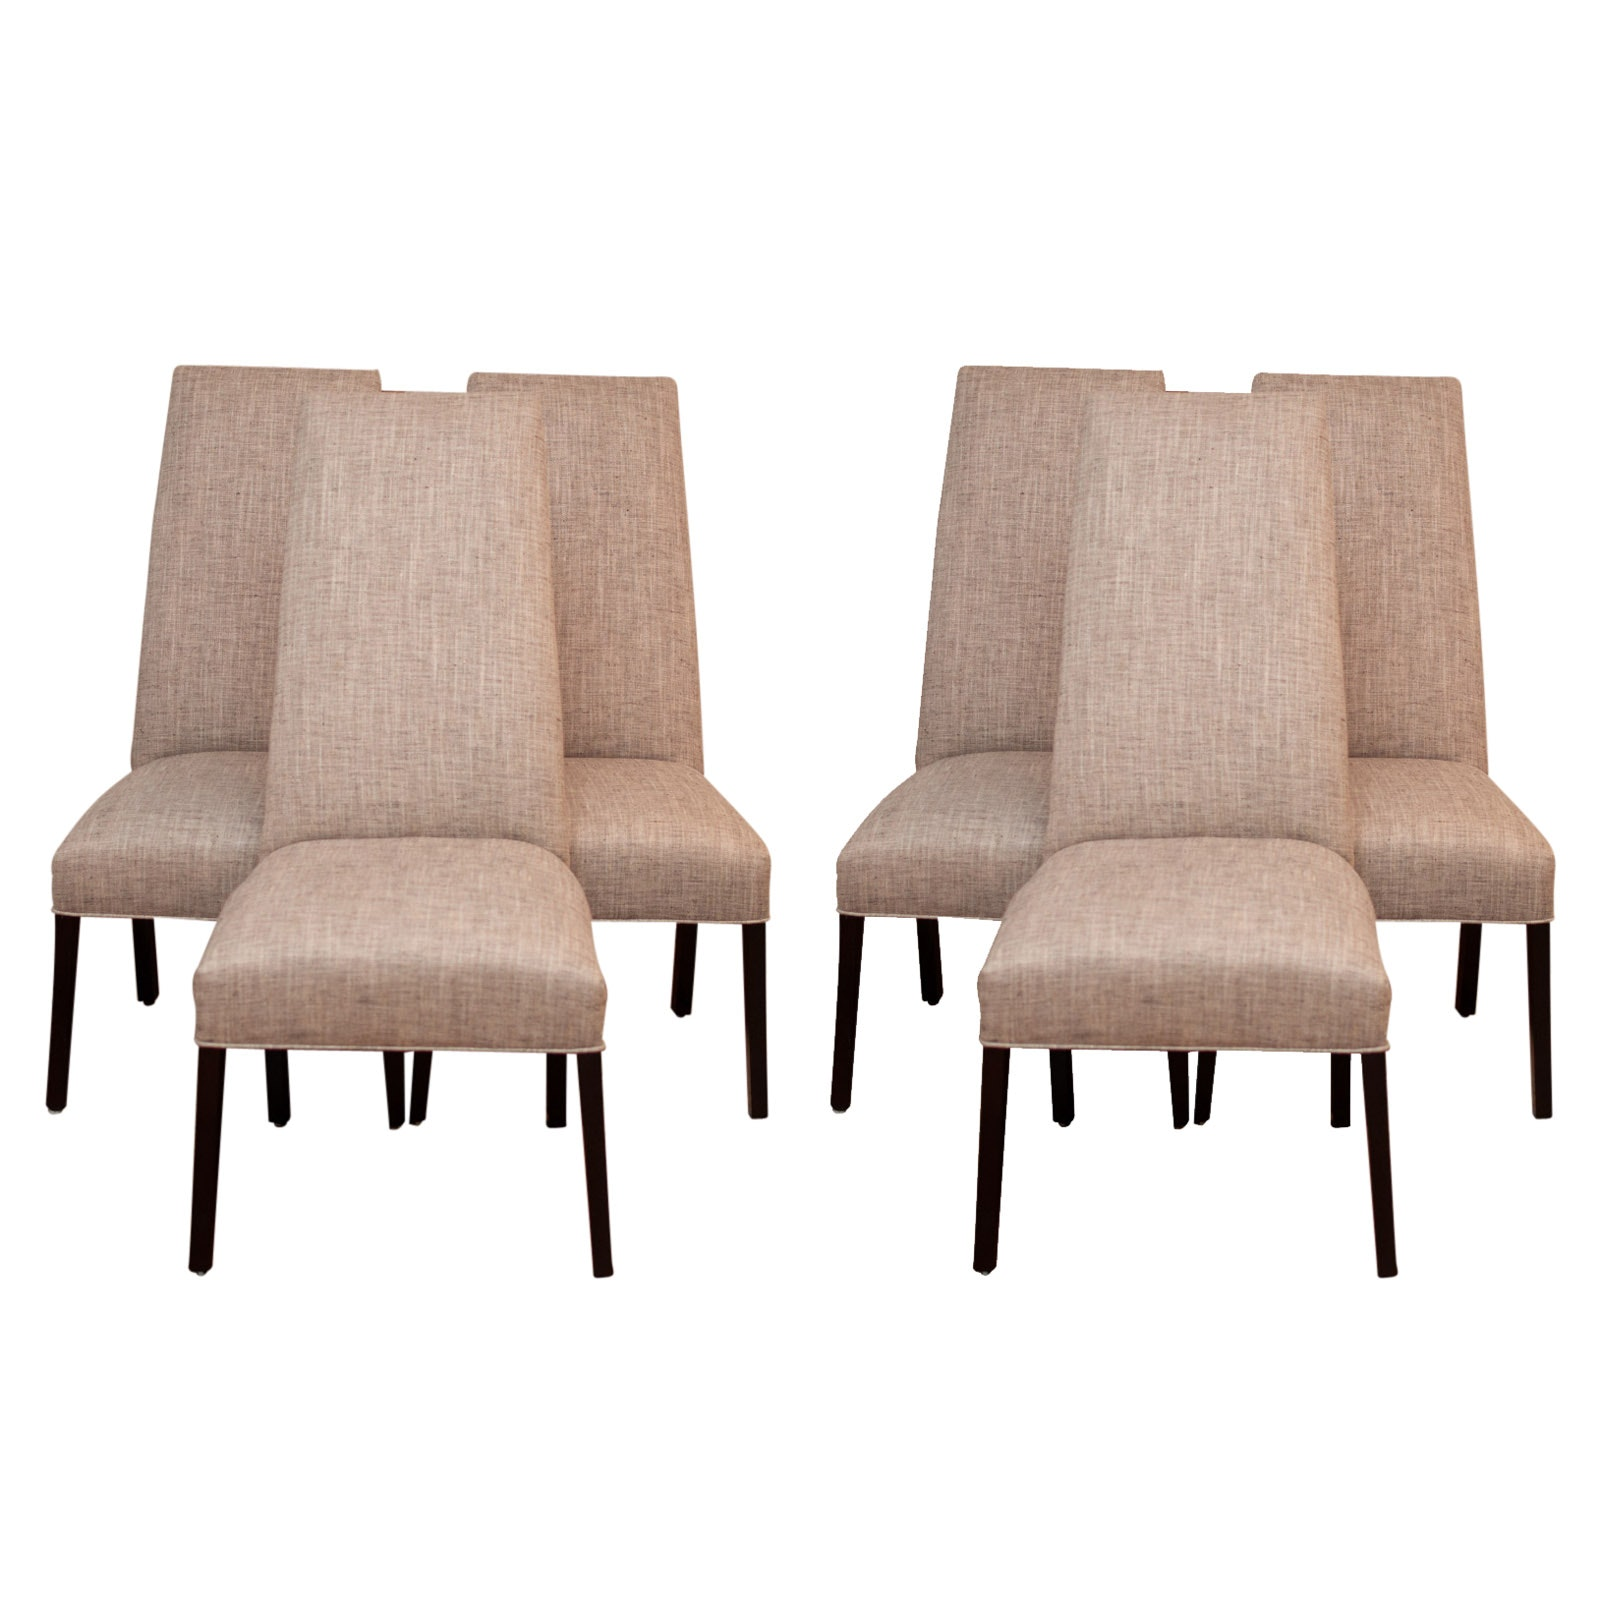 Contemporary Upholstered Dining Chairs by Designmaster